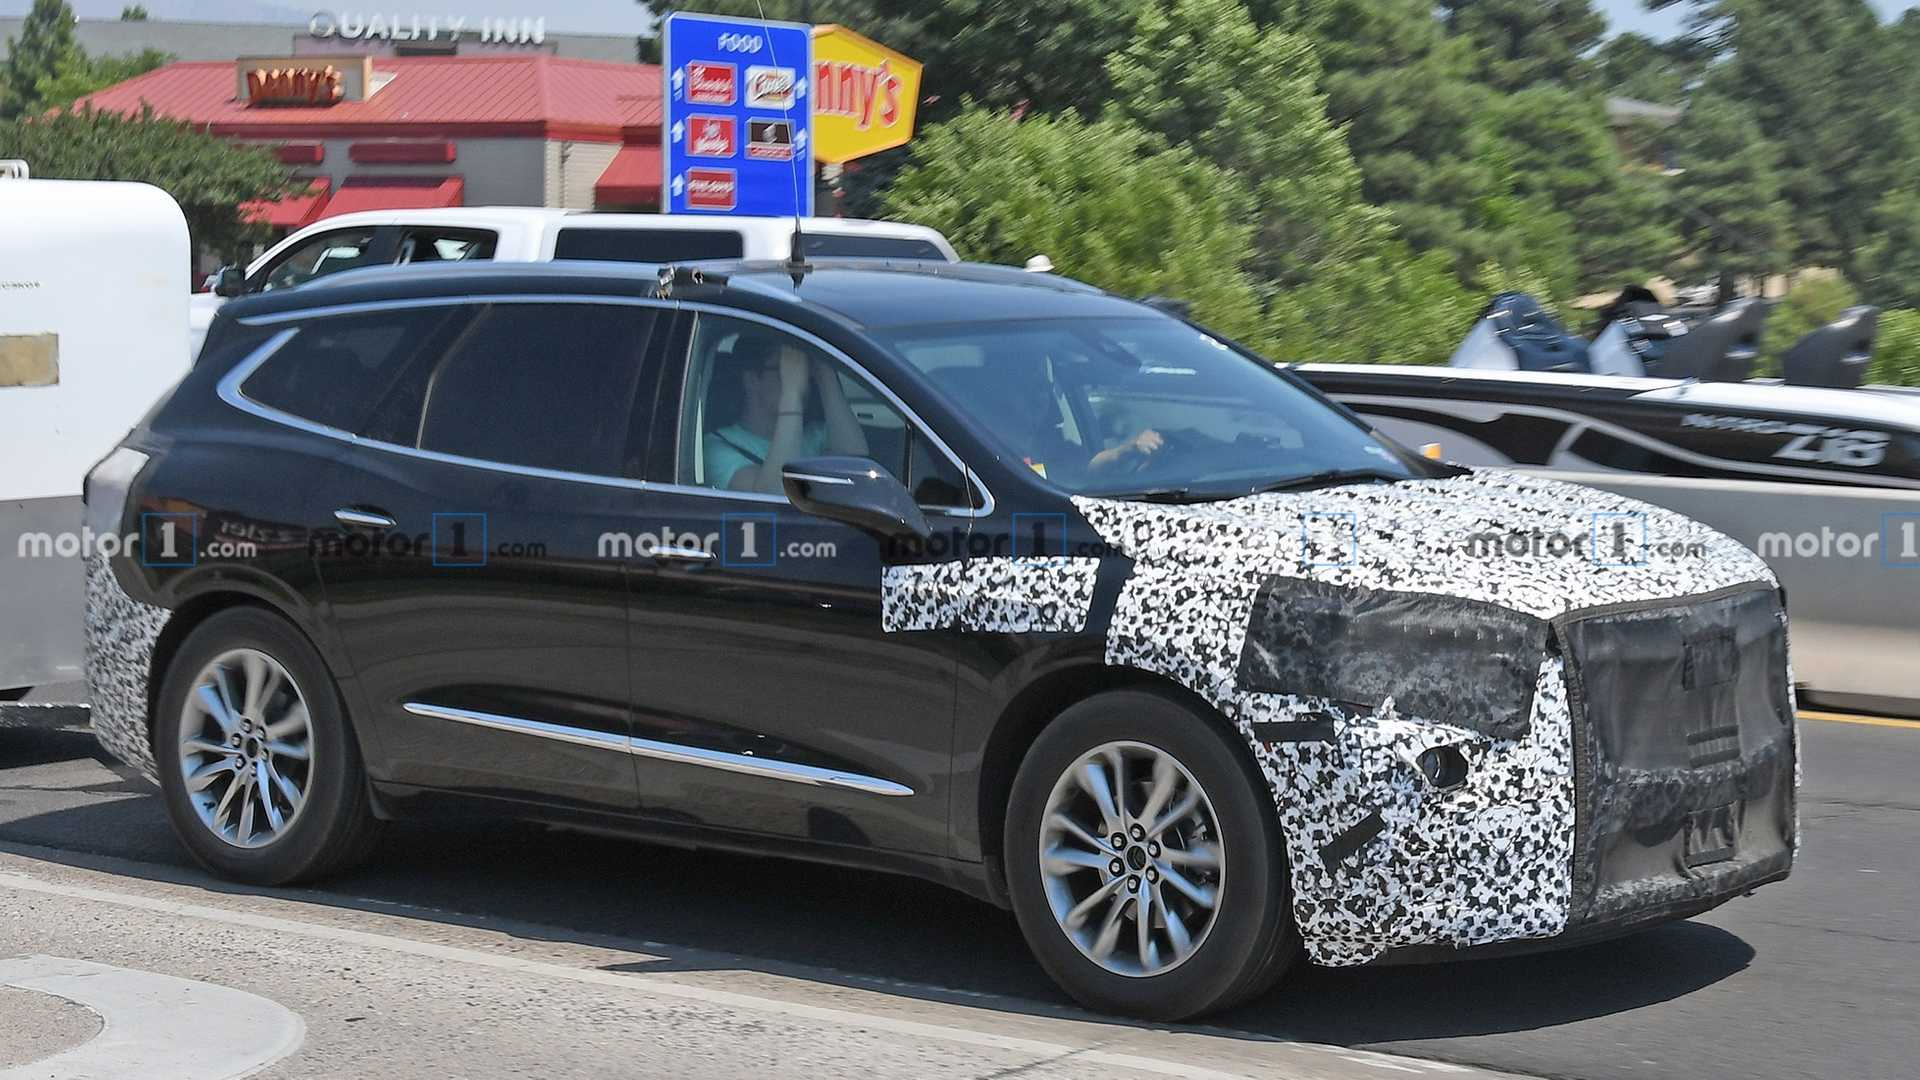 2021 Buick Enclave Spied For The First Time Build Your Own New 2021 Buick Enclave